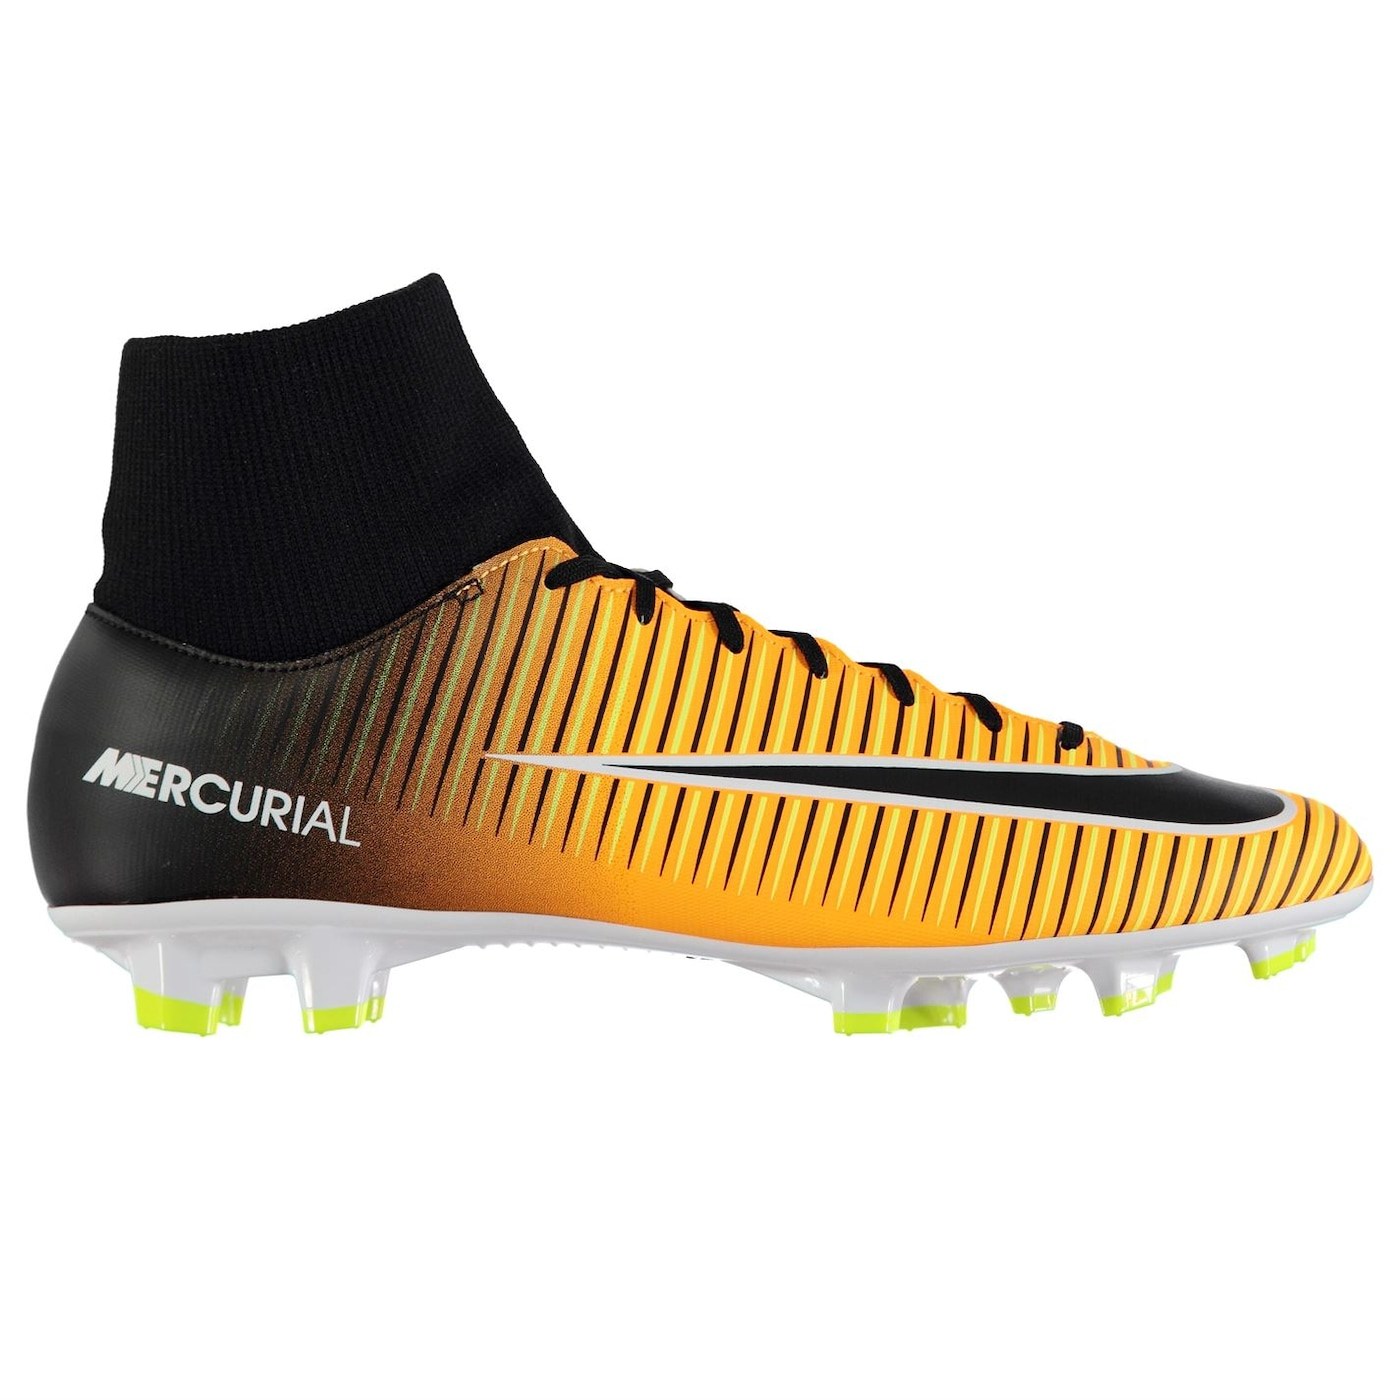 Nike Mercurial Victory Dynamic Fit FG Football Boots Mens